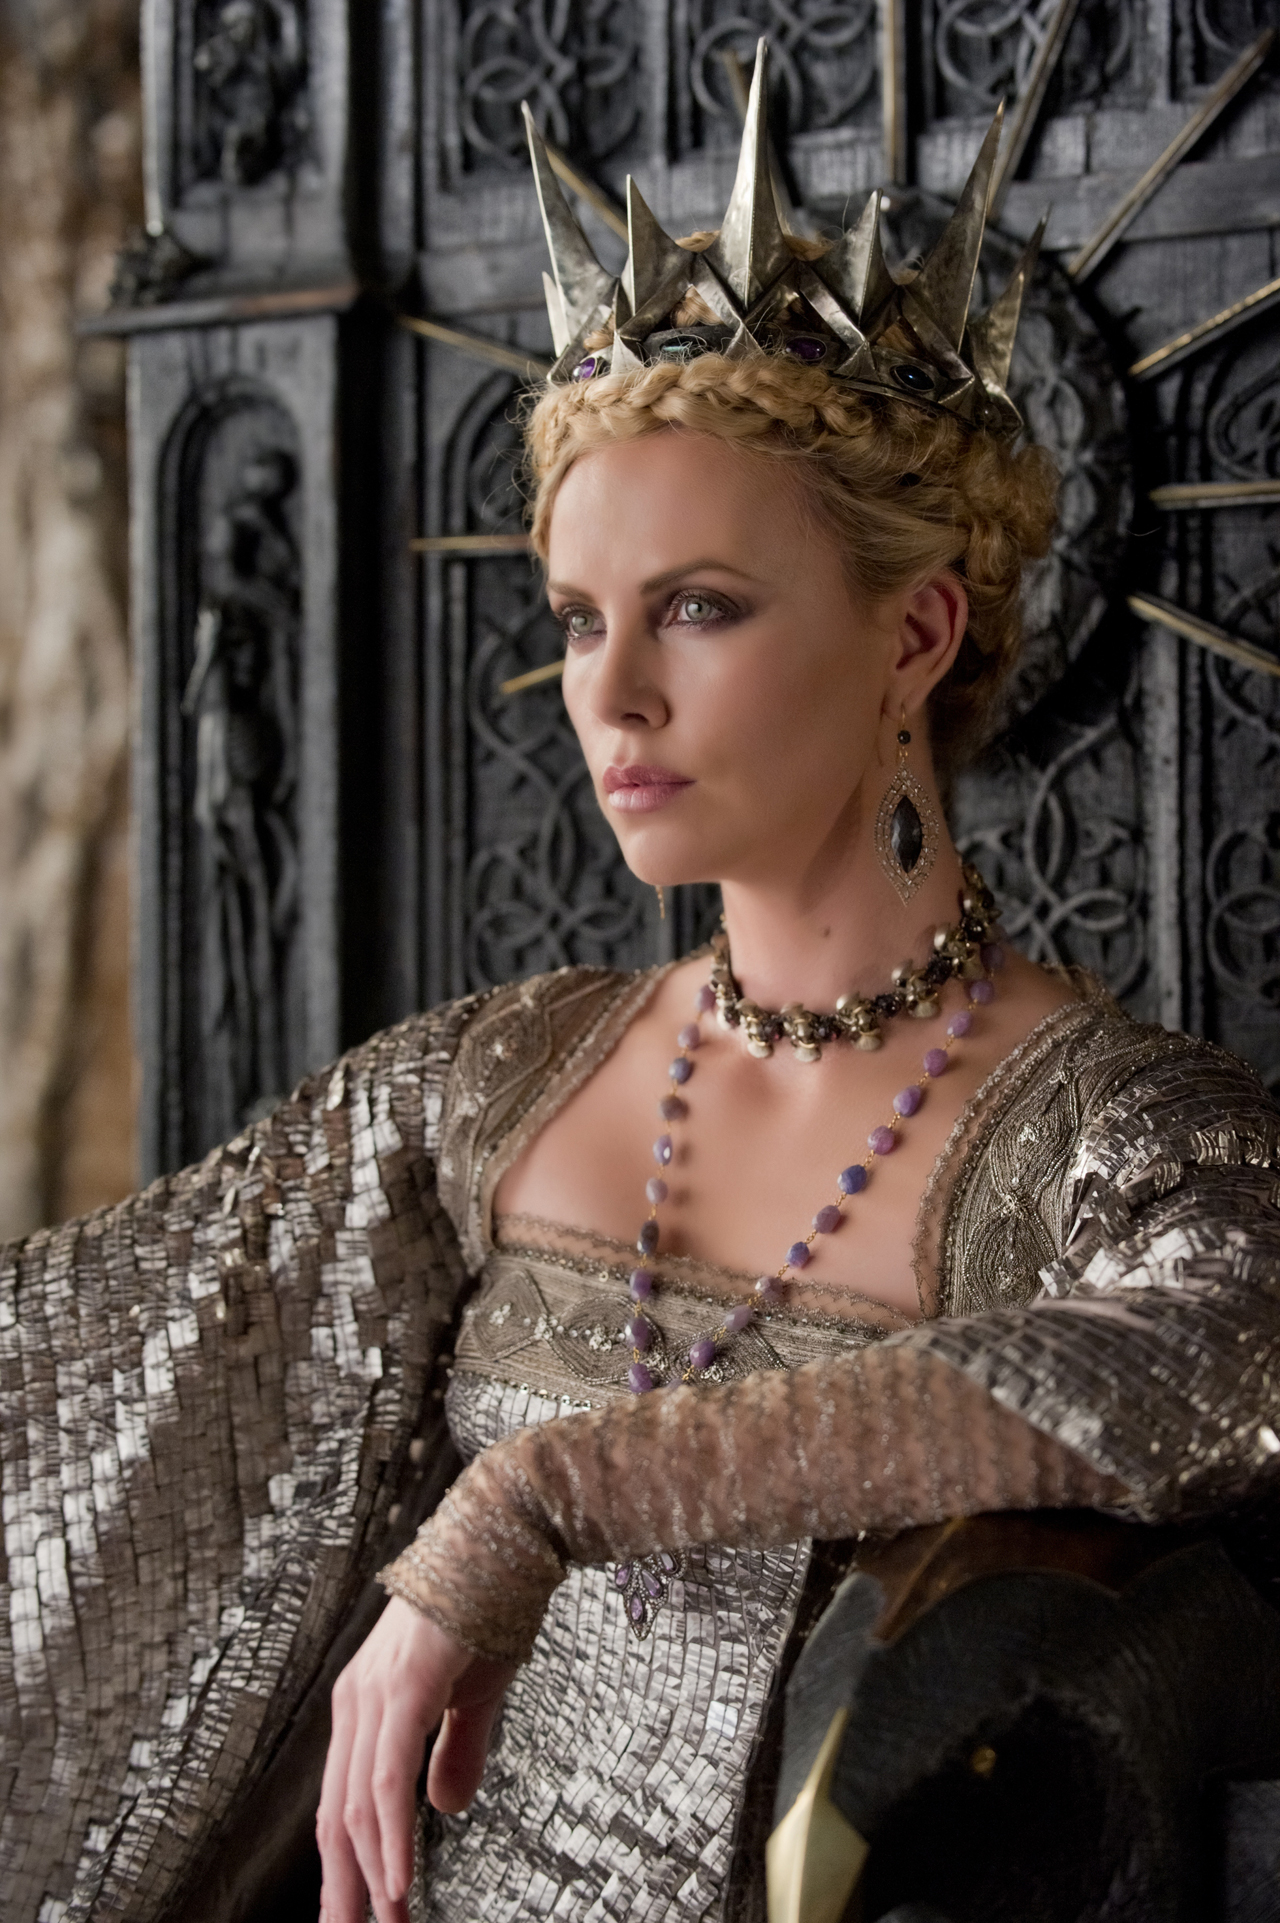 http://imagebox.cz.osobnosti.cz/film/snow-white-and-the-huntsman/O579668-458d8.jpg